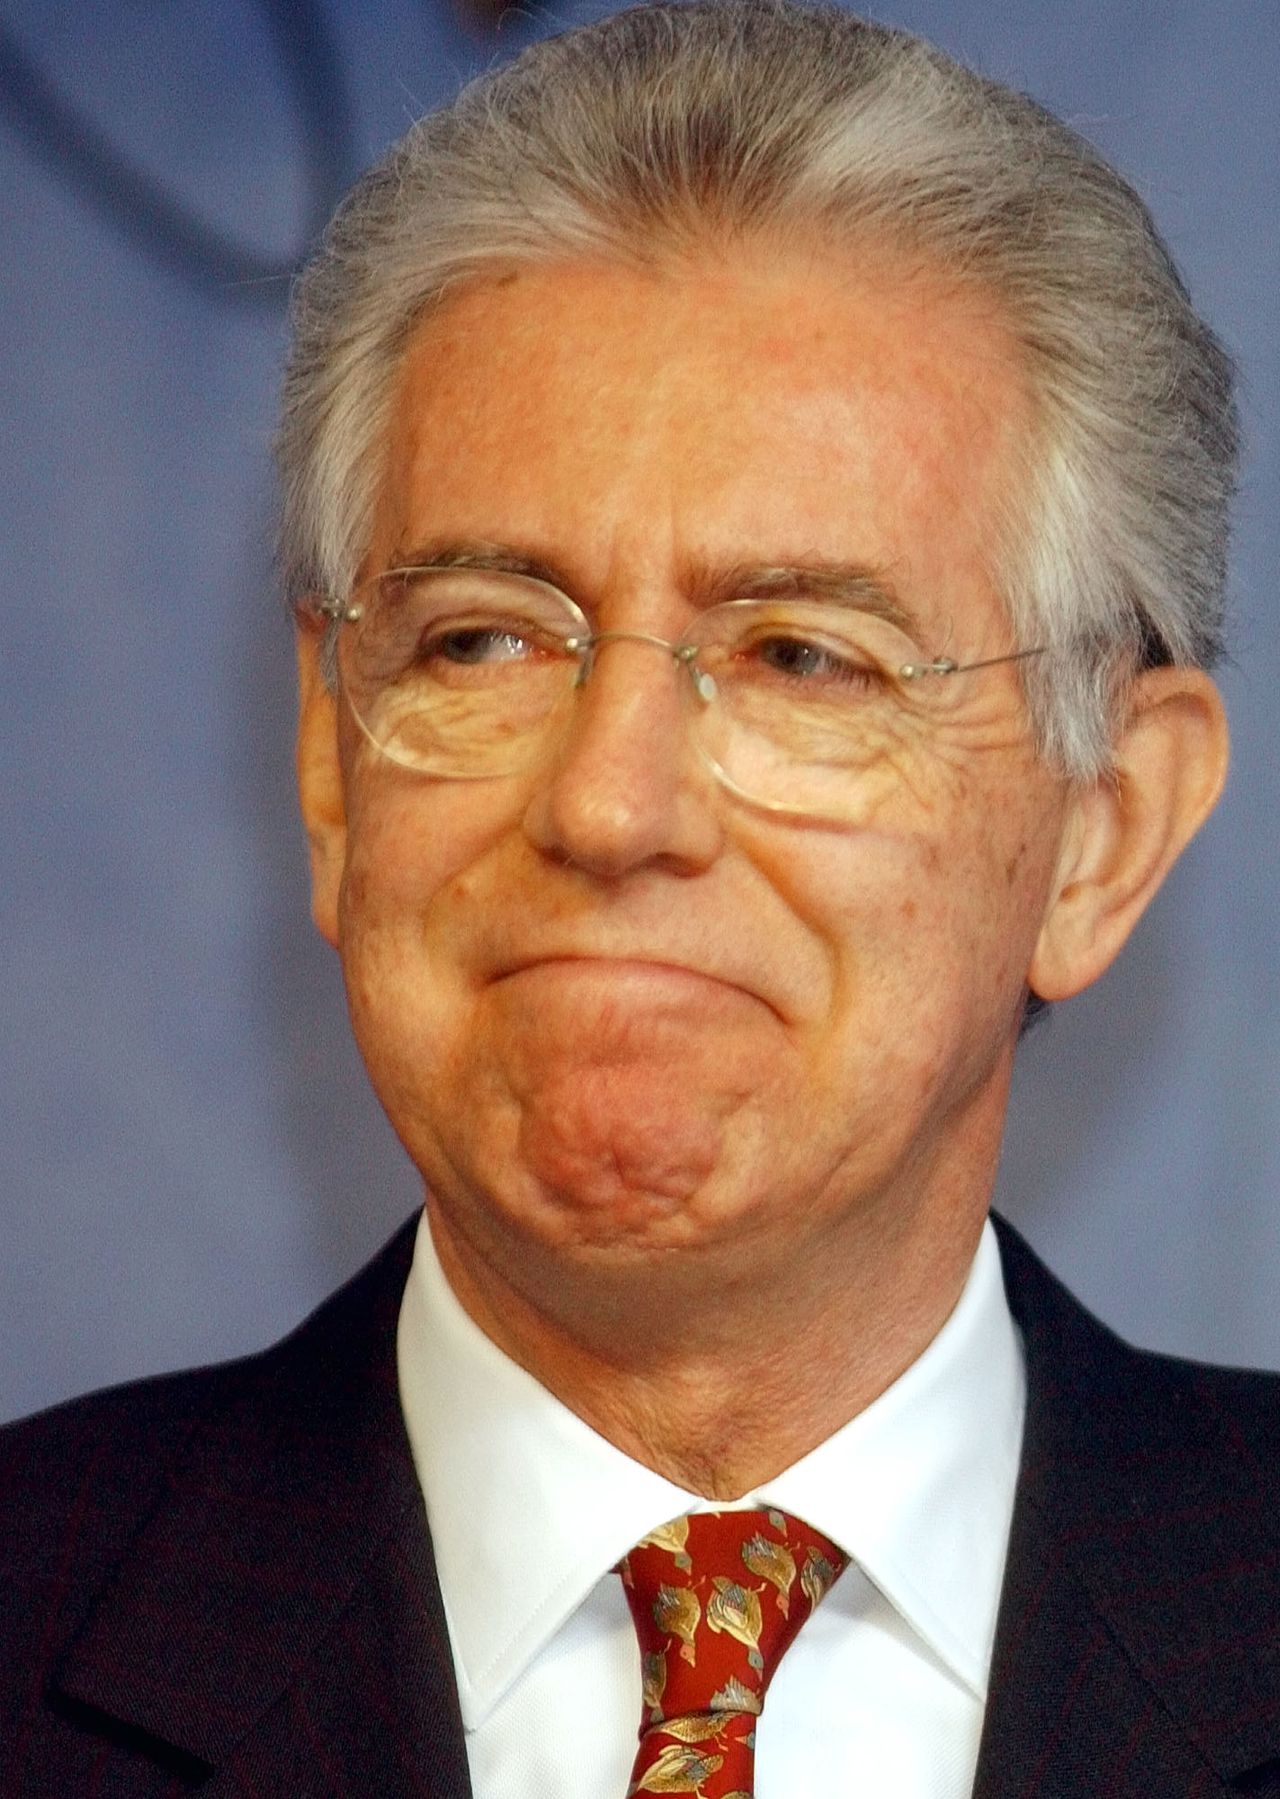 FILE - In this March 18, 2004 file photo, European Competition Commissioner Mario Monti speaks during a media conference at EU headquarters in Brussels. Italy's president moved swiftly Wednesday, Nov. 9, 2011, to reassure anxious markets, promising that Silvio Berlusconi would soon be vacating the premier's office and unexpectedly lavishing praise on economist Mario Monti, who might lead the debt-plagued country's next government. (AP Photo/Geert Vanden Wijngaert, File)